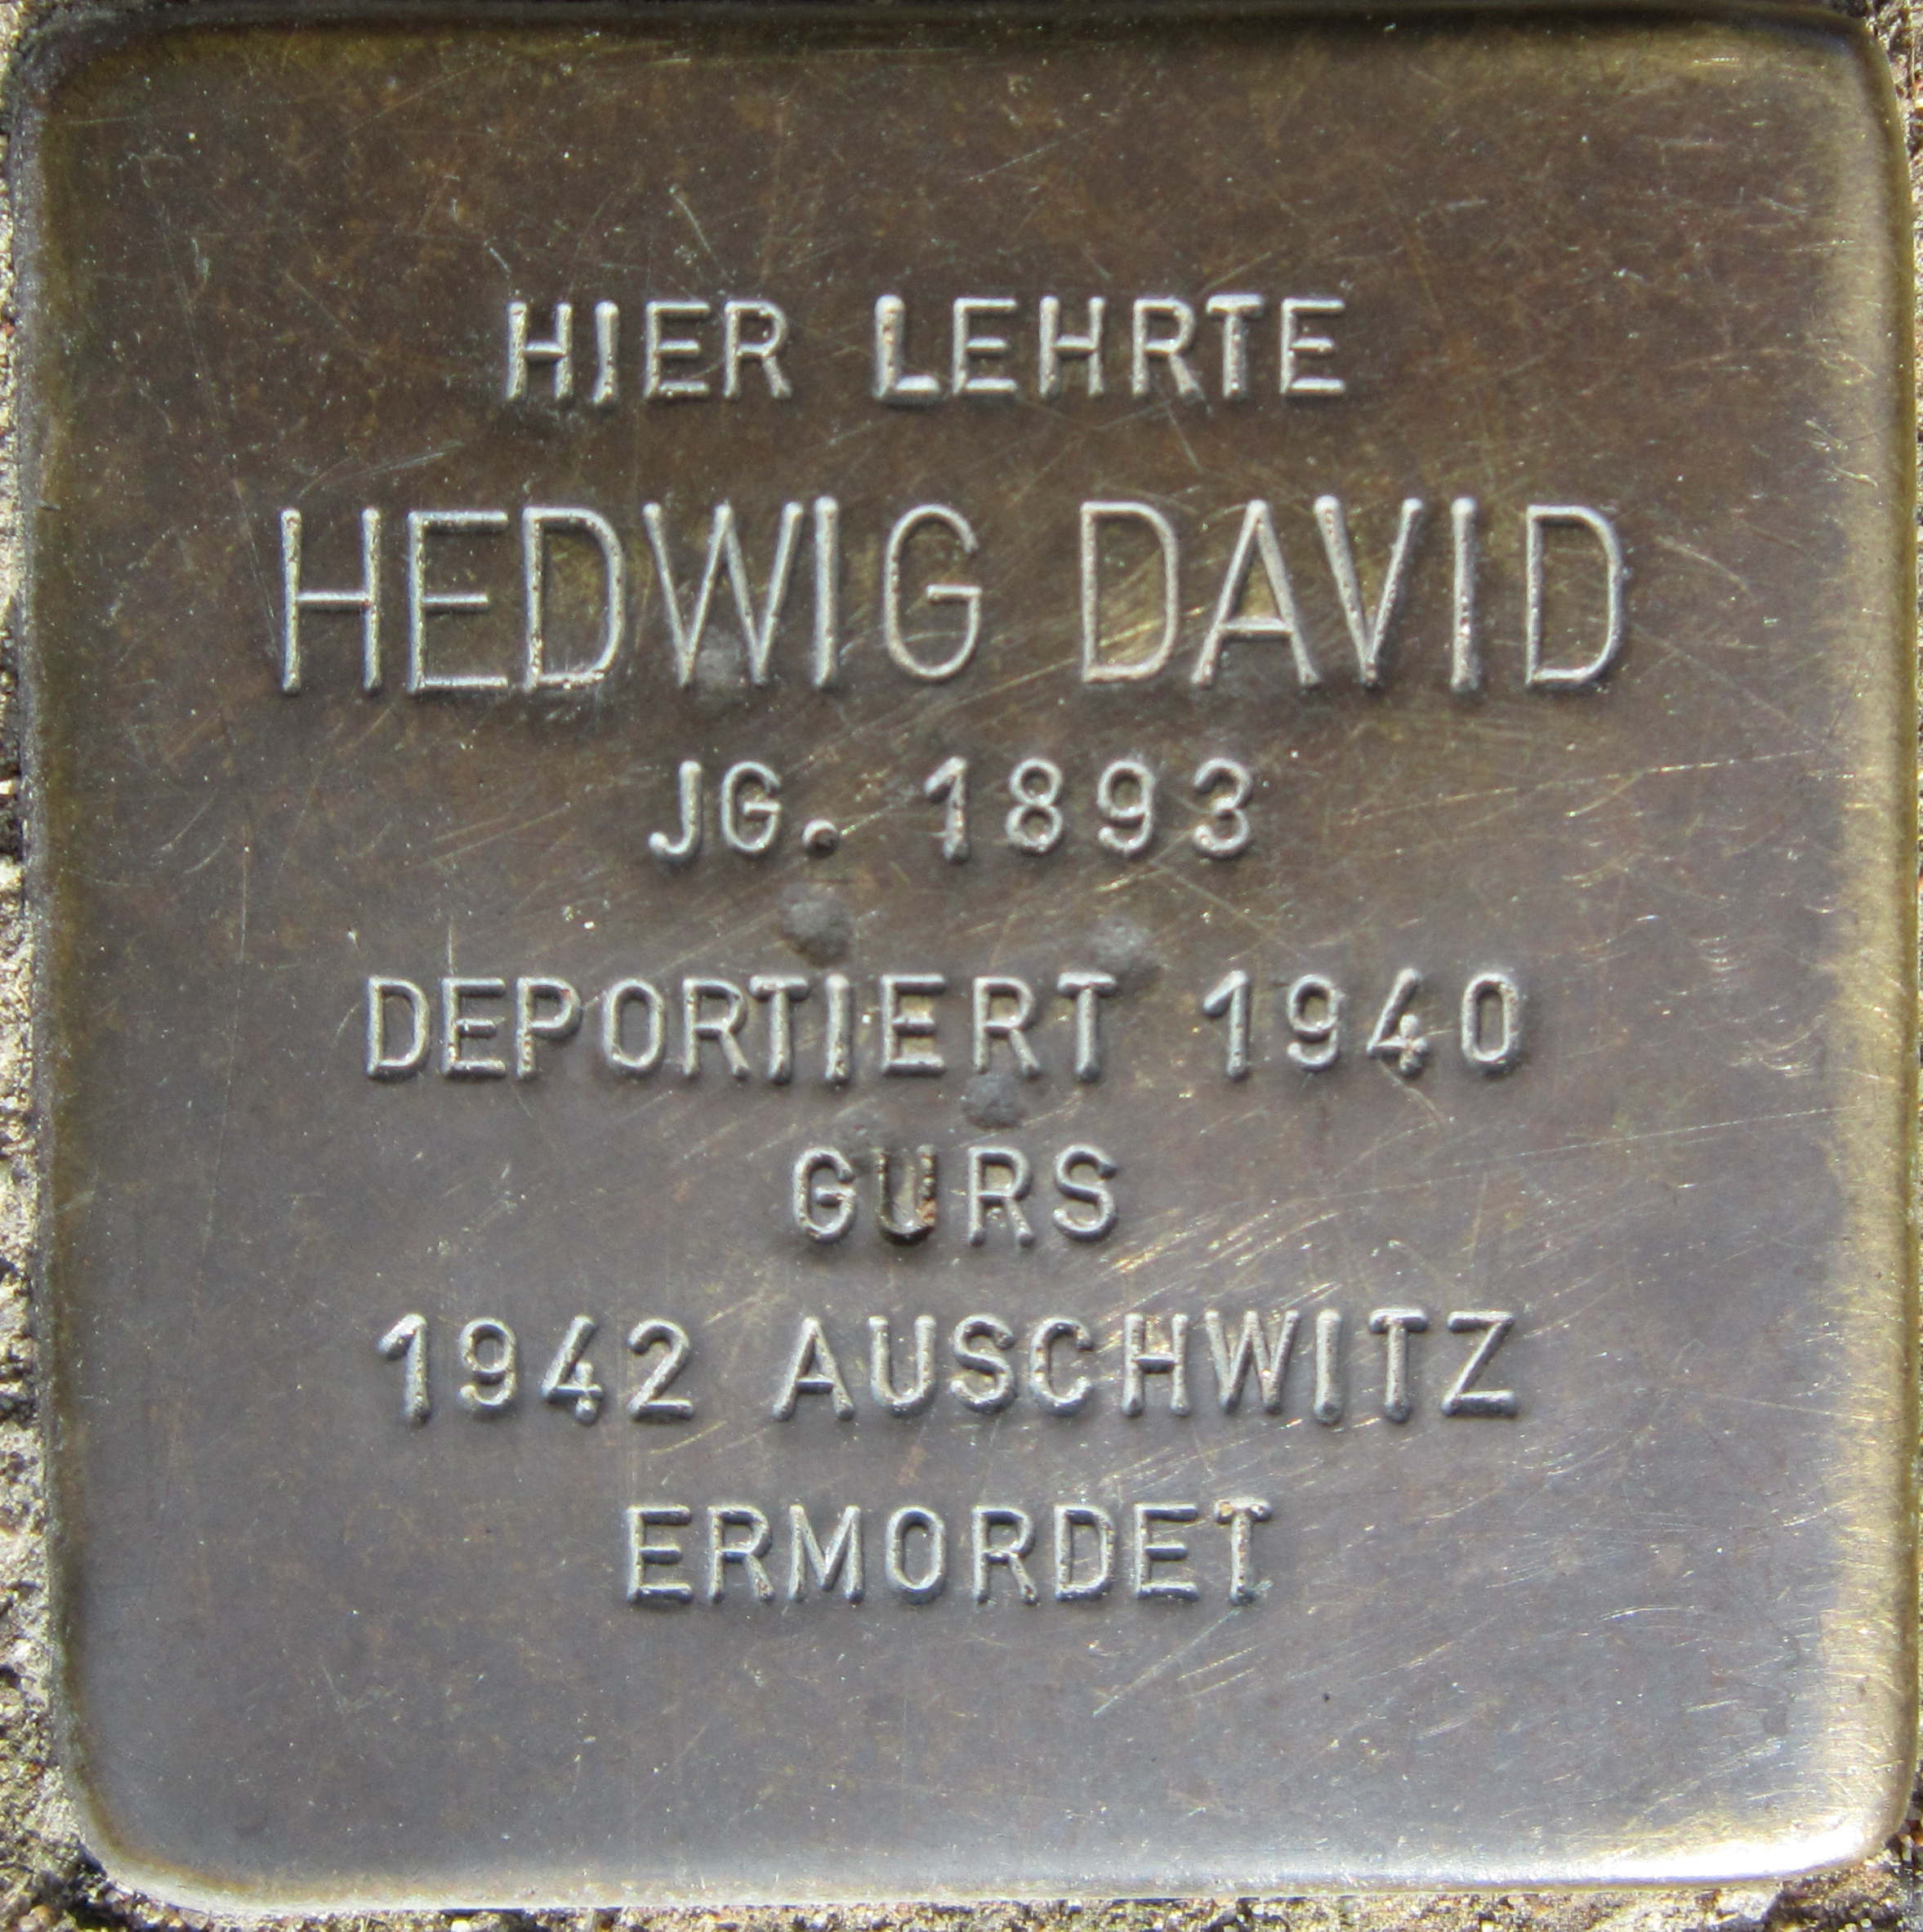 https://upload.wikimedia.org/wikipedia/commons/d/d2/Stolperstein_Pforzheim_David_Hedwig.jpeg